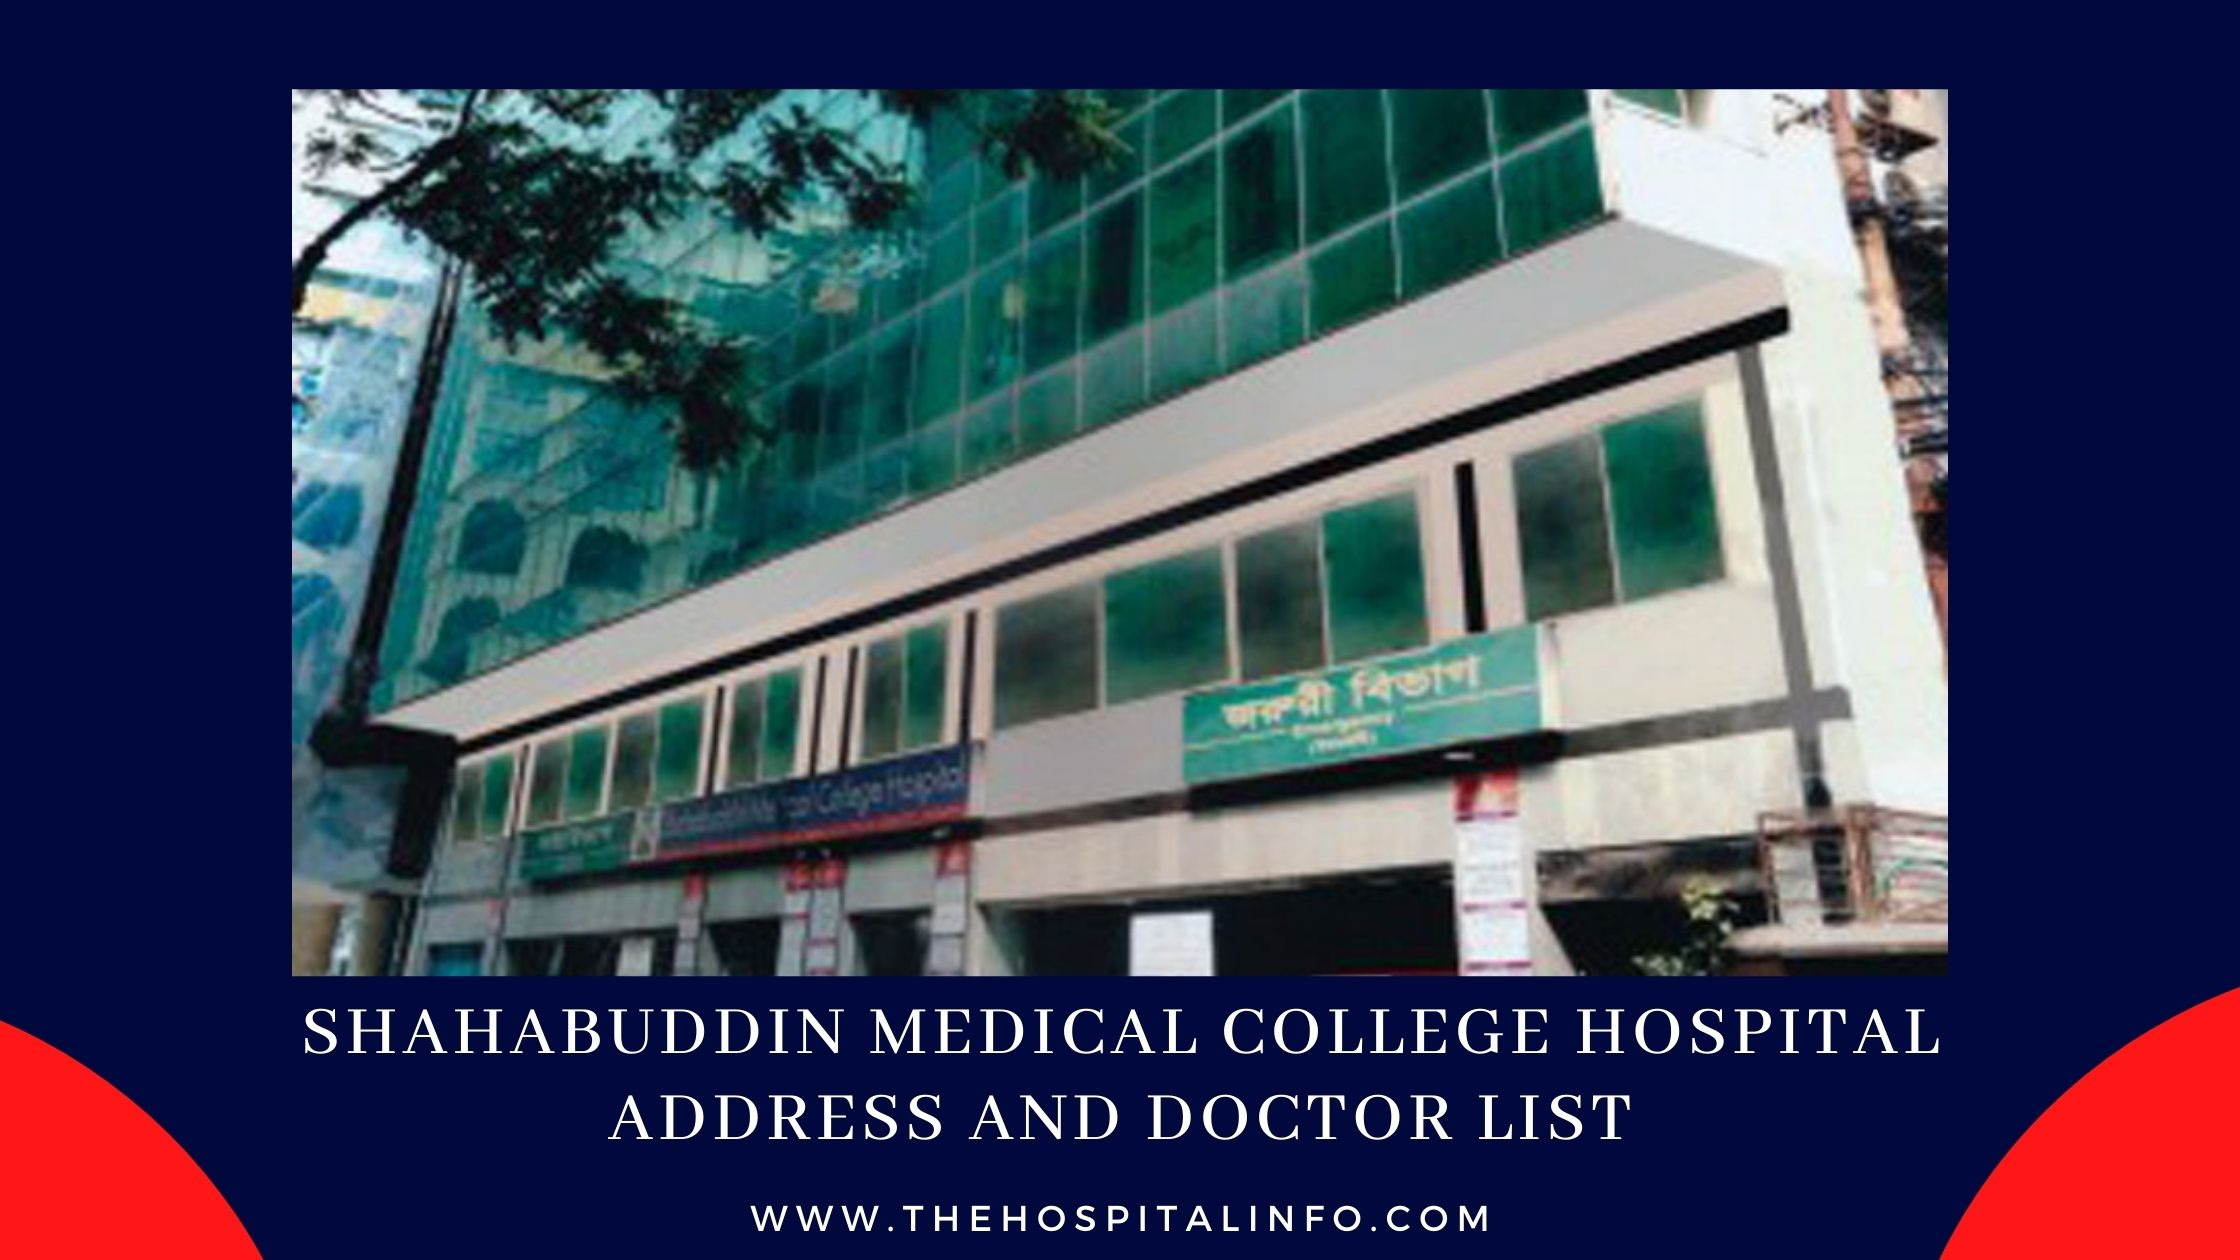 Shahabuddin Medical College Hospital Address And DOCTOR list